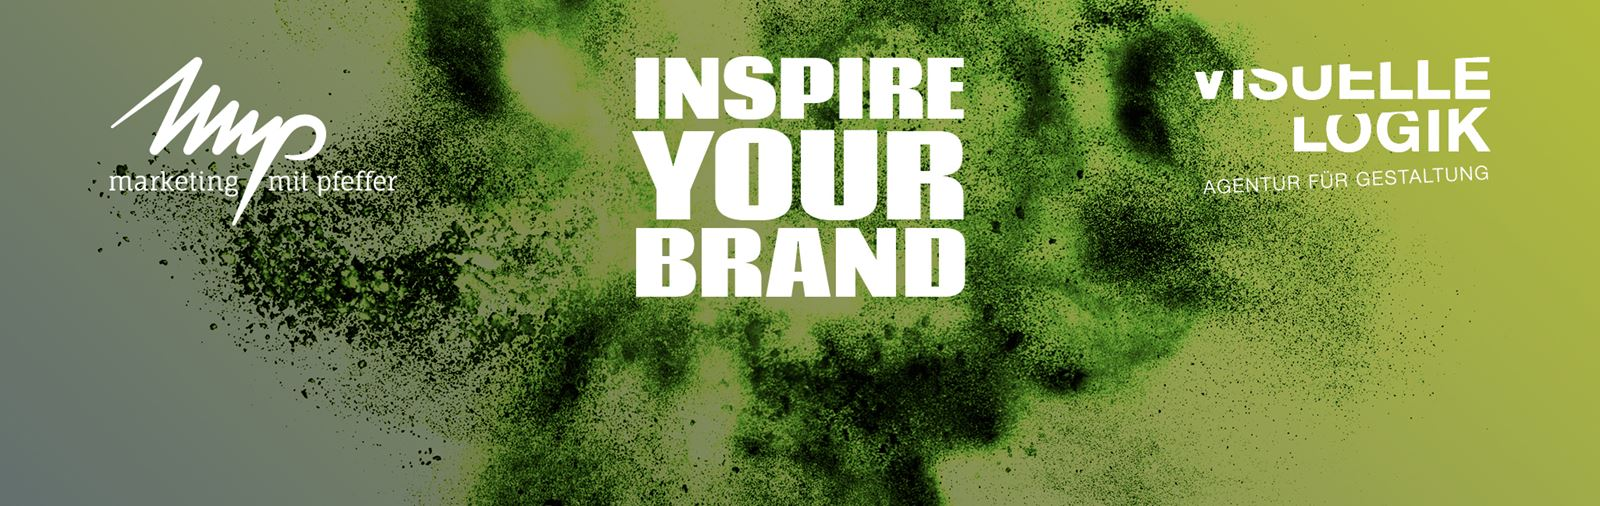 INSPIRE YOUR BRAND